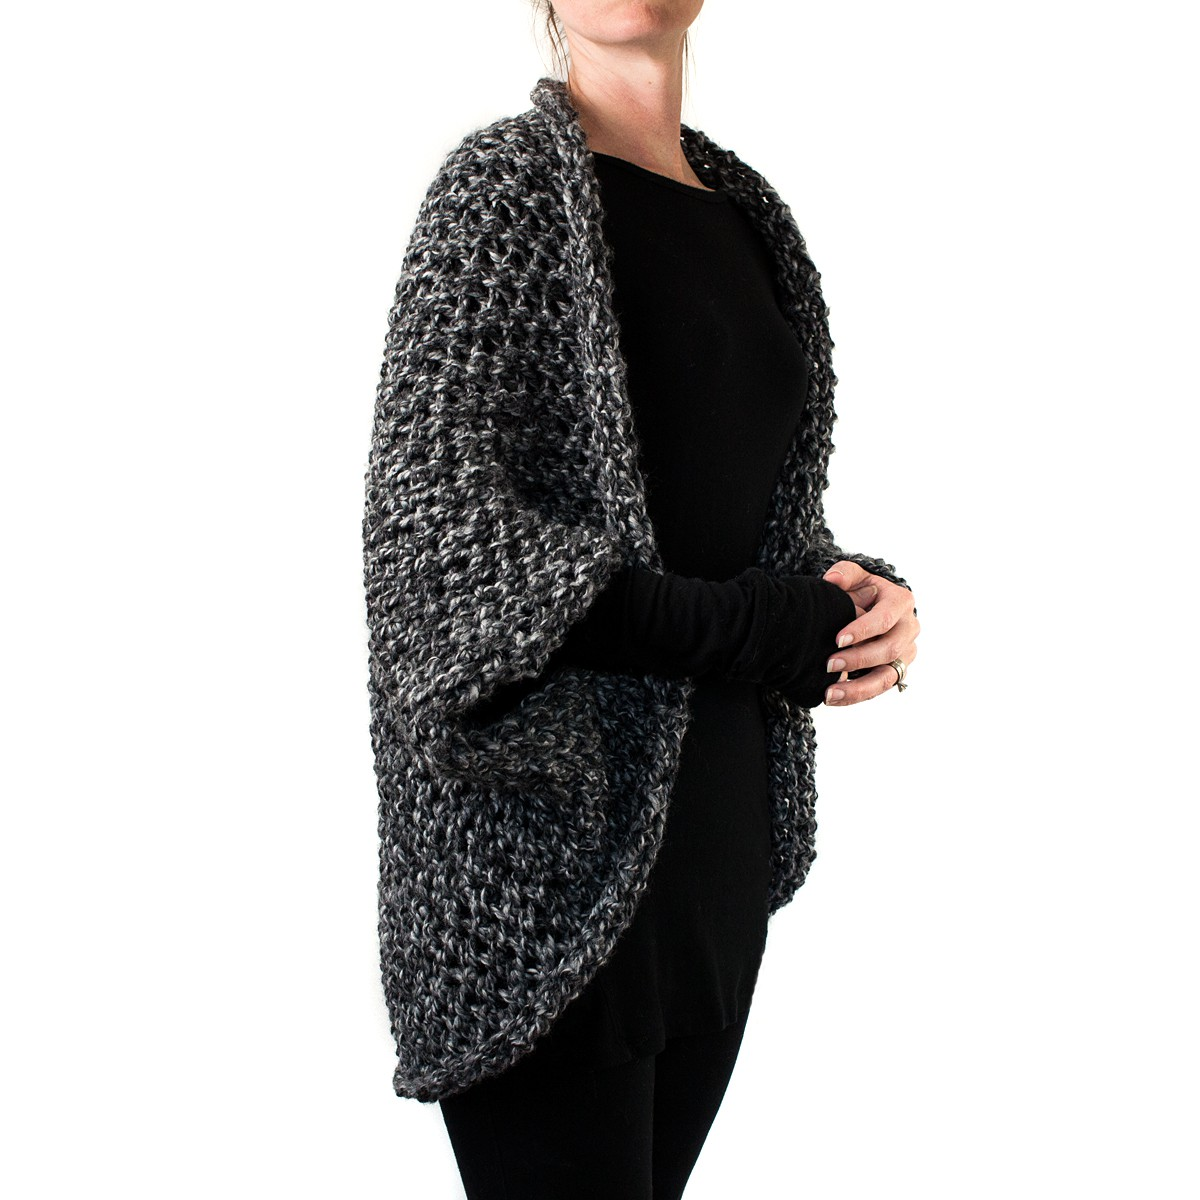 RESOLVE : Cocoon Knitting Pattern - Brome Fields